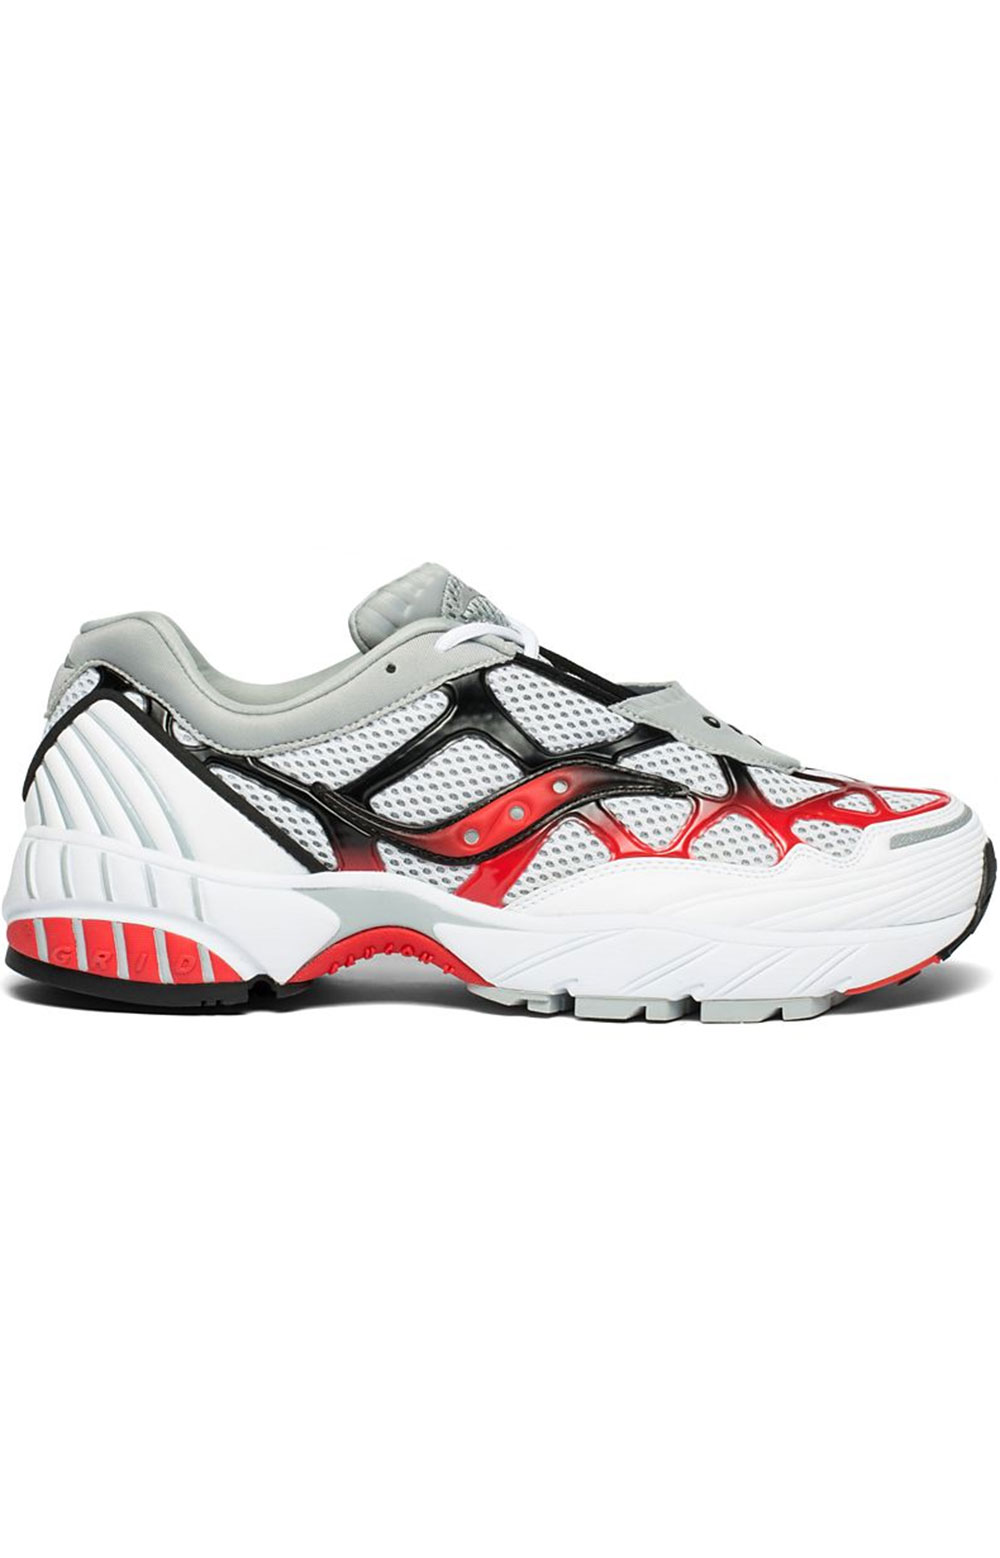 (S70466-2) Grid Web Shoe - White/Grey/Red